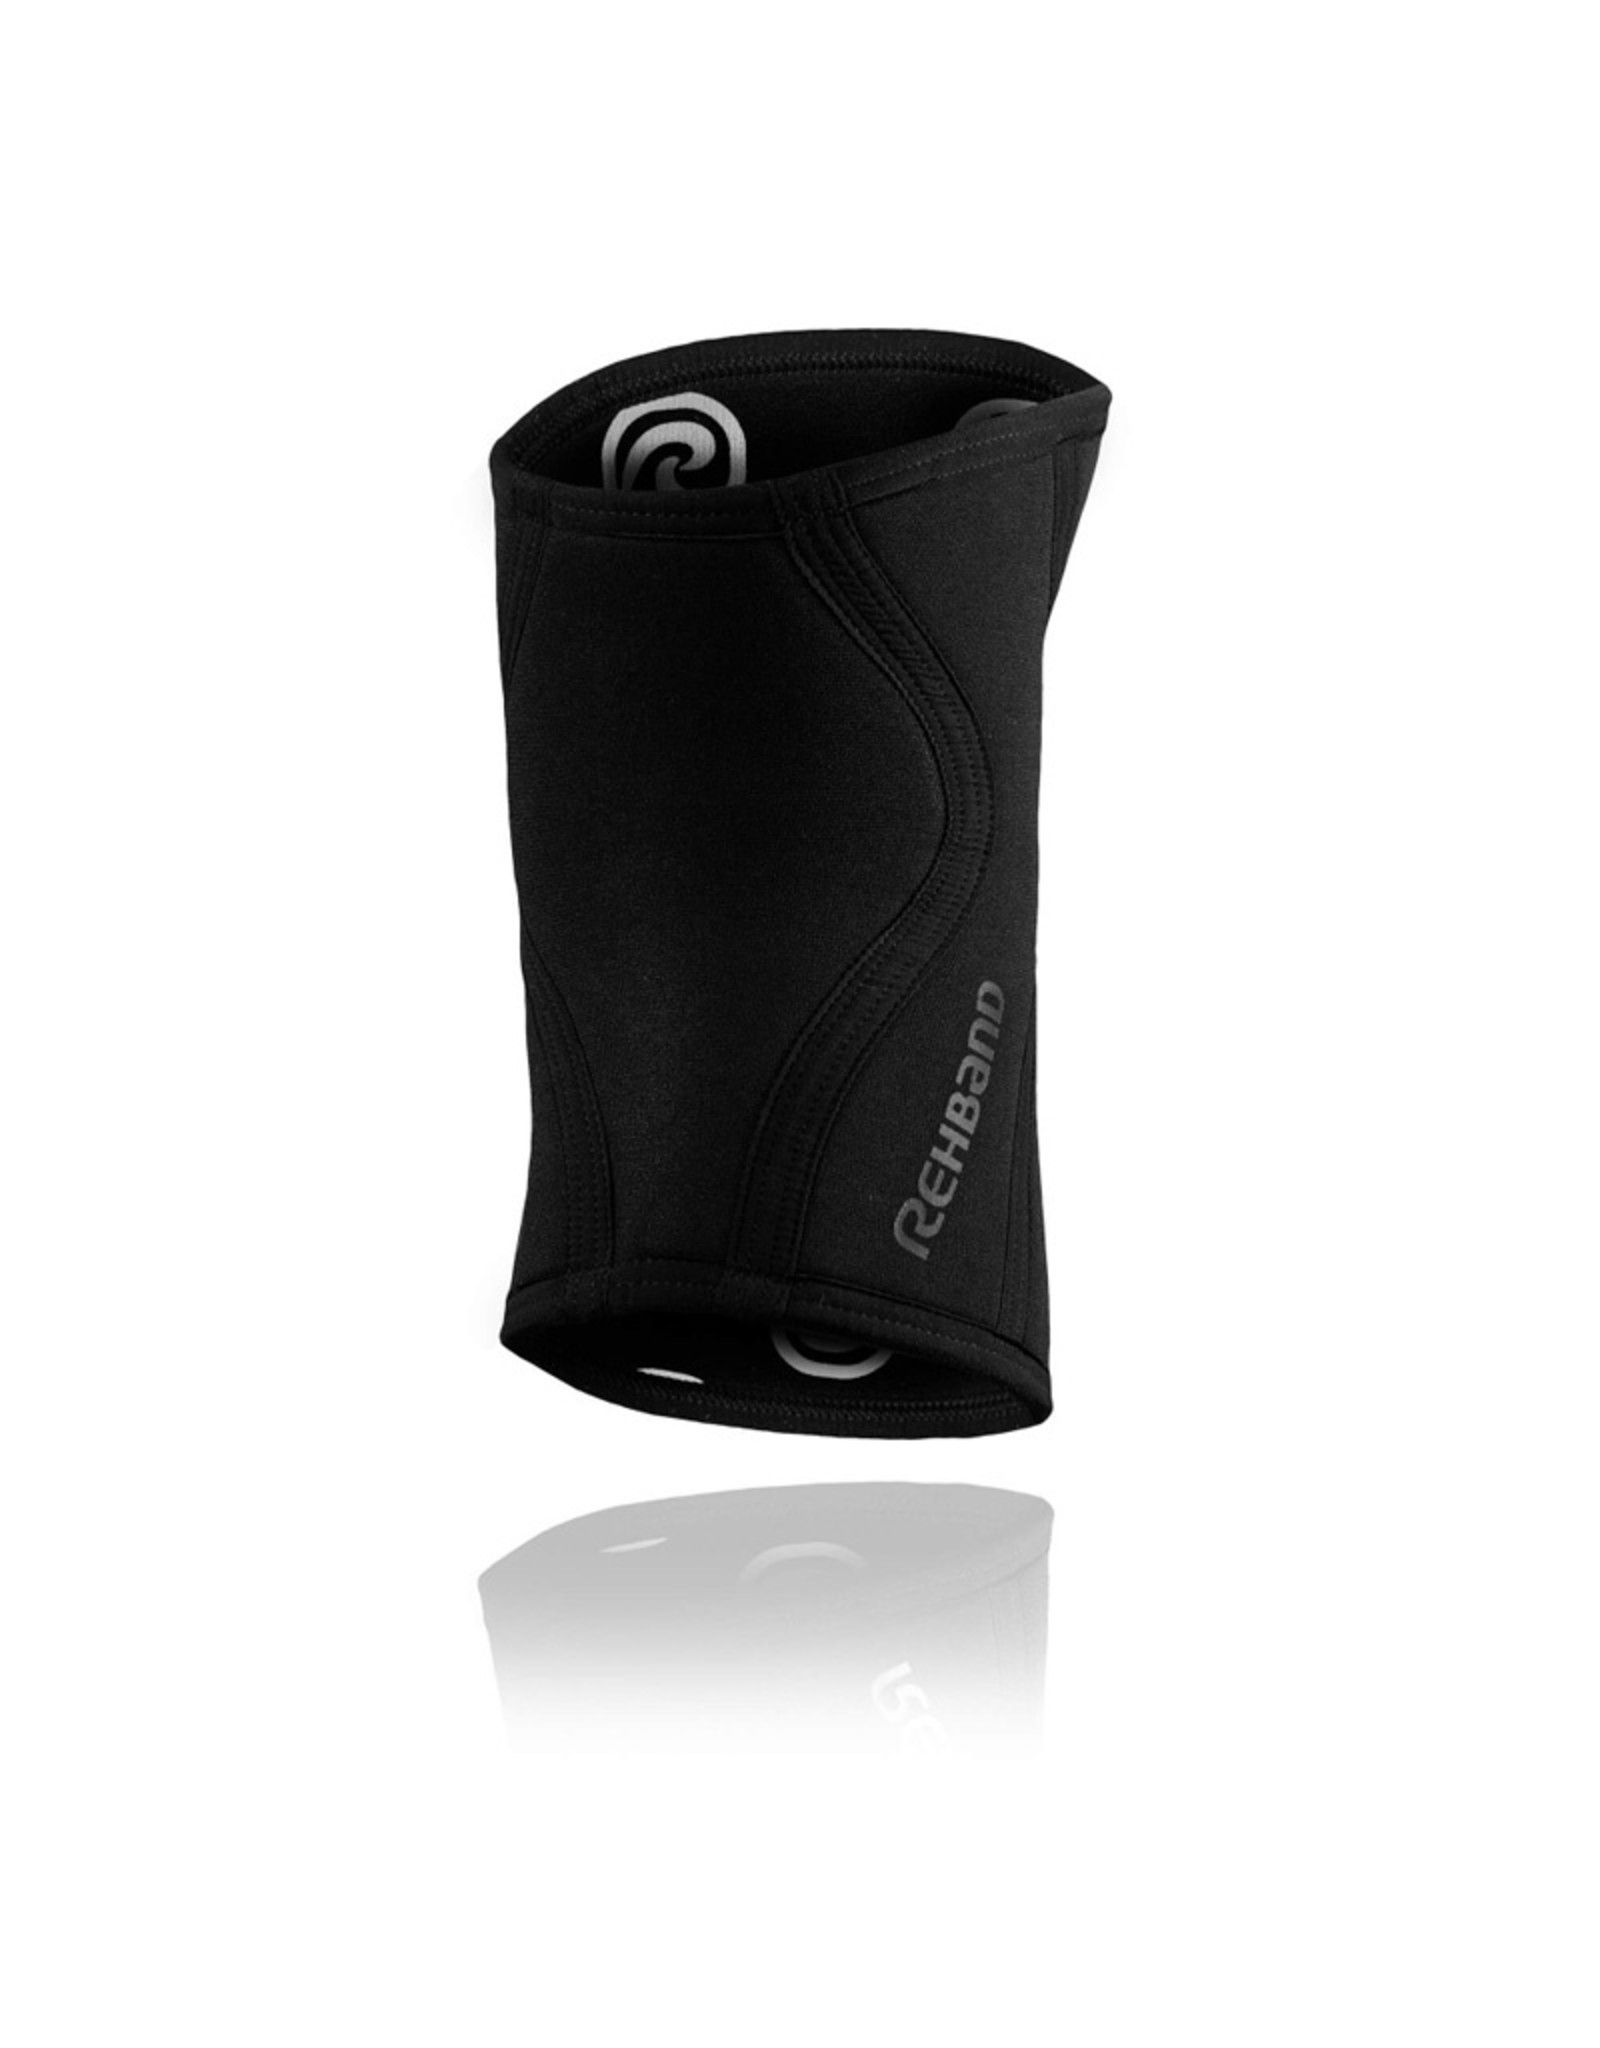 Rehband Rx Knee Sleeve 7Mm Kniebrace - Carbon